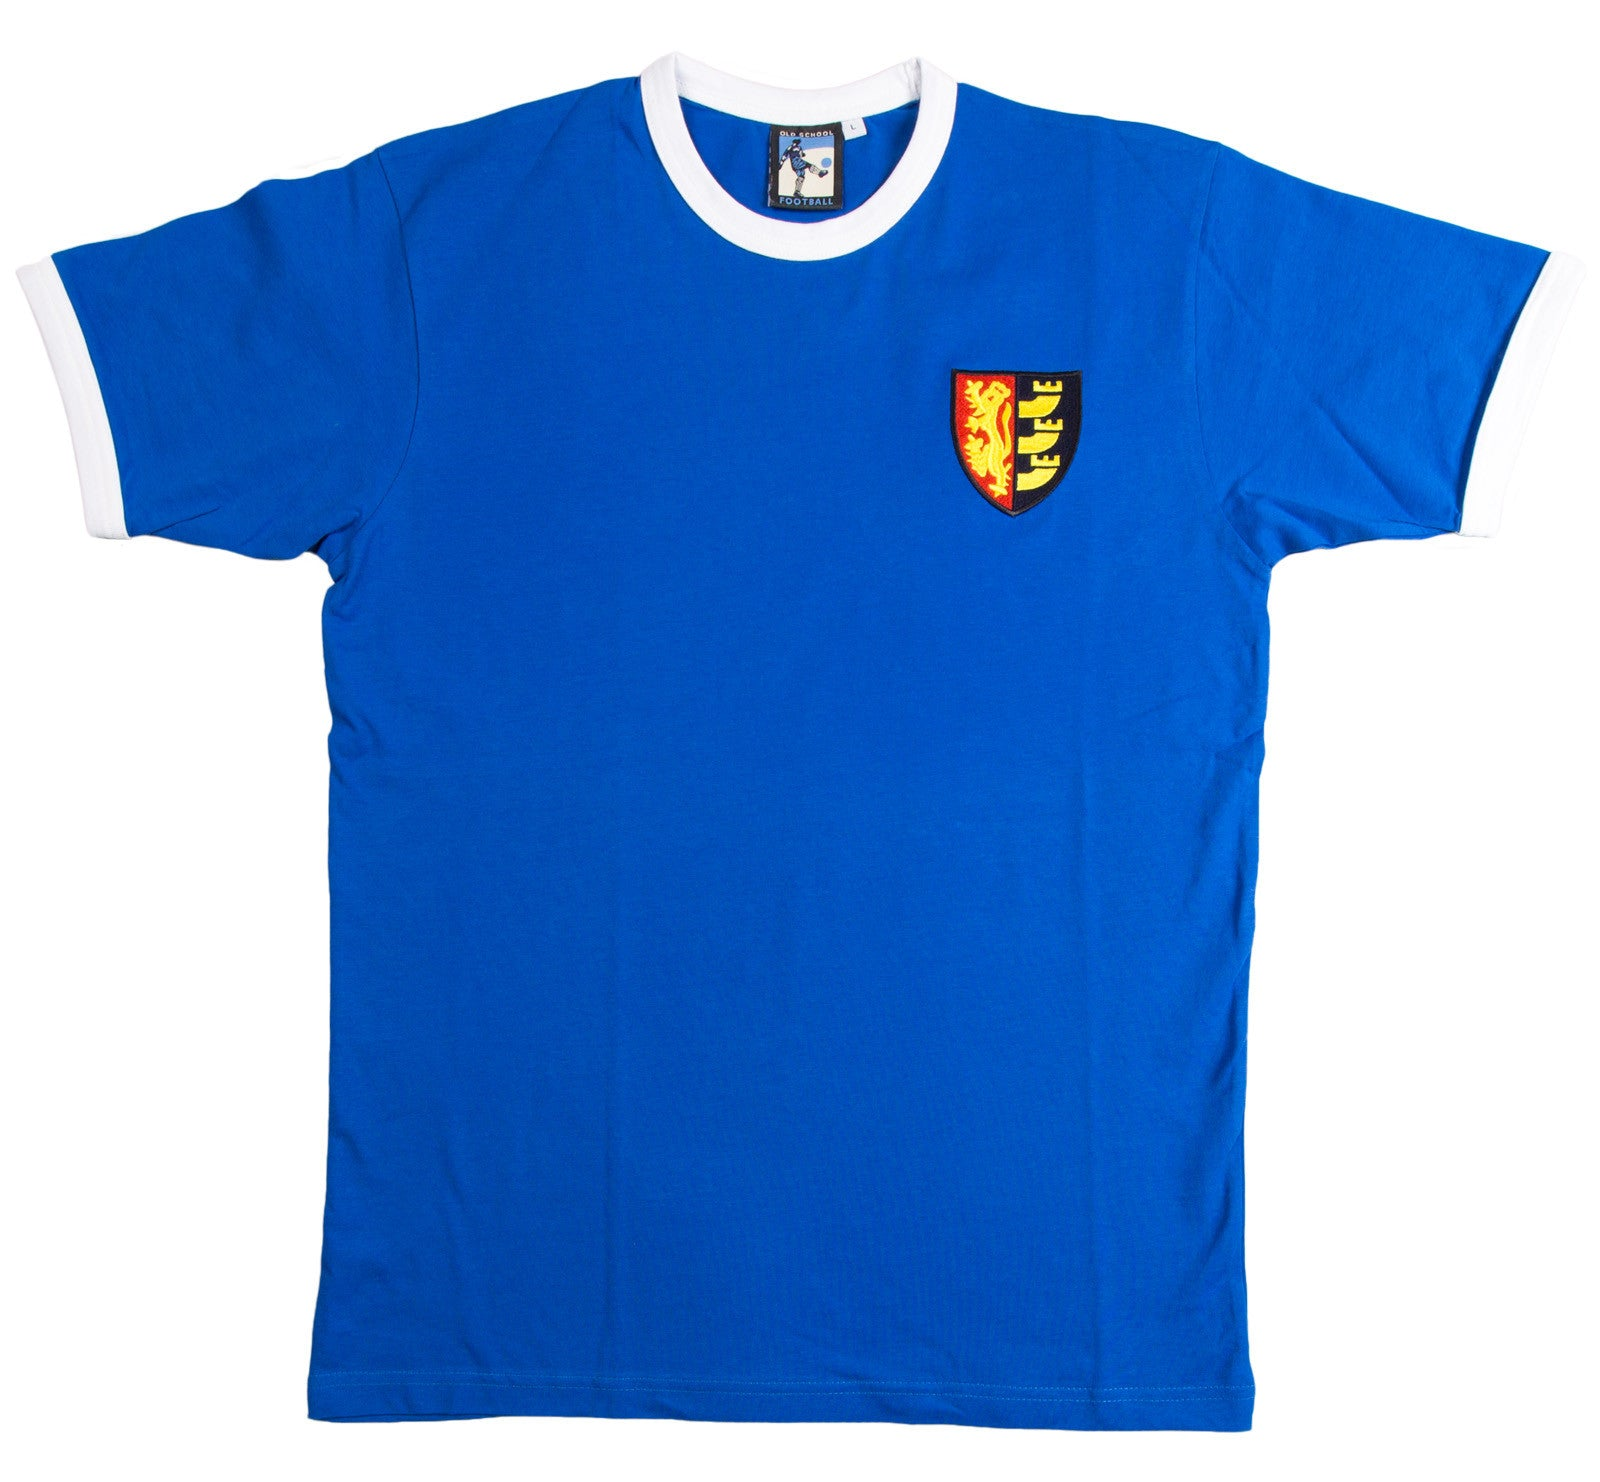 Ipswich Town Retro Football T Shirt 1960s - 1970s - Old School Football